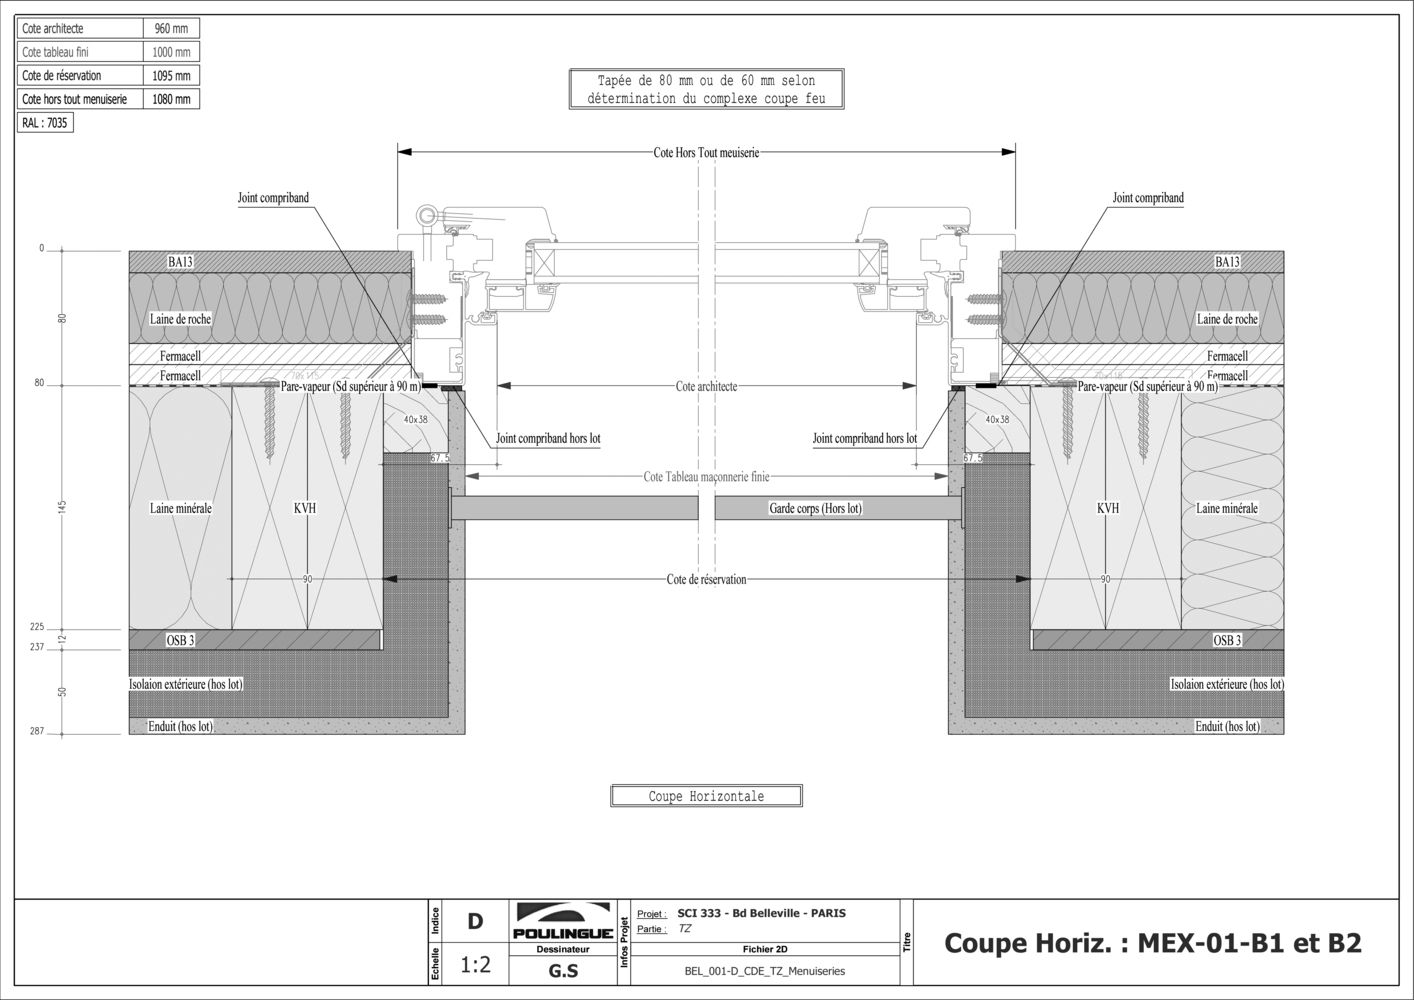 Gallery Of Belleville Septembre Architecture 20 In 2020 Architecture Details Architecture Concrete Structure